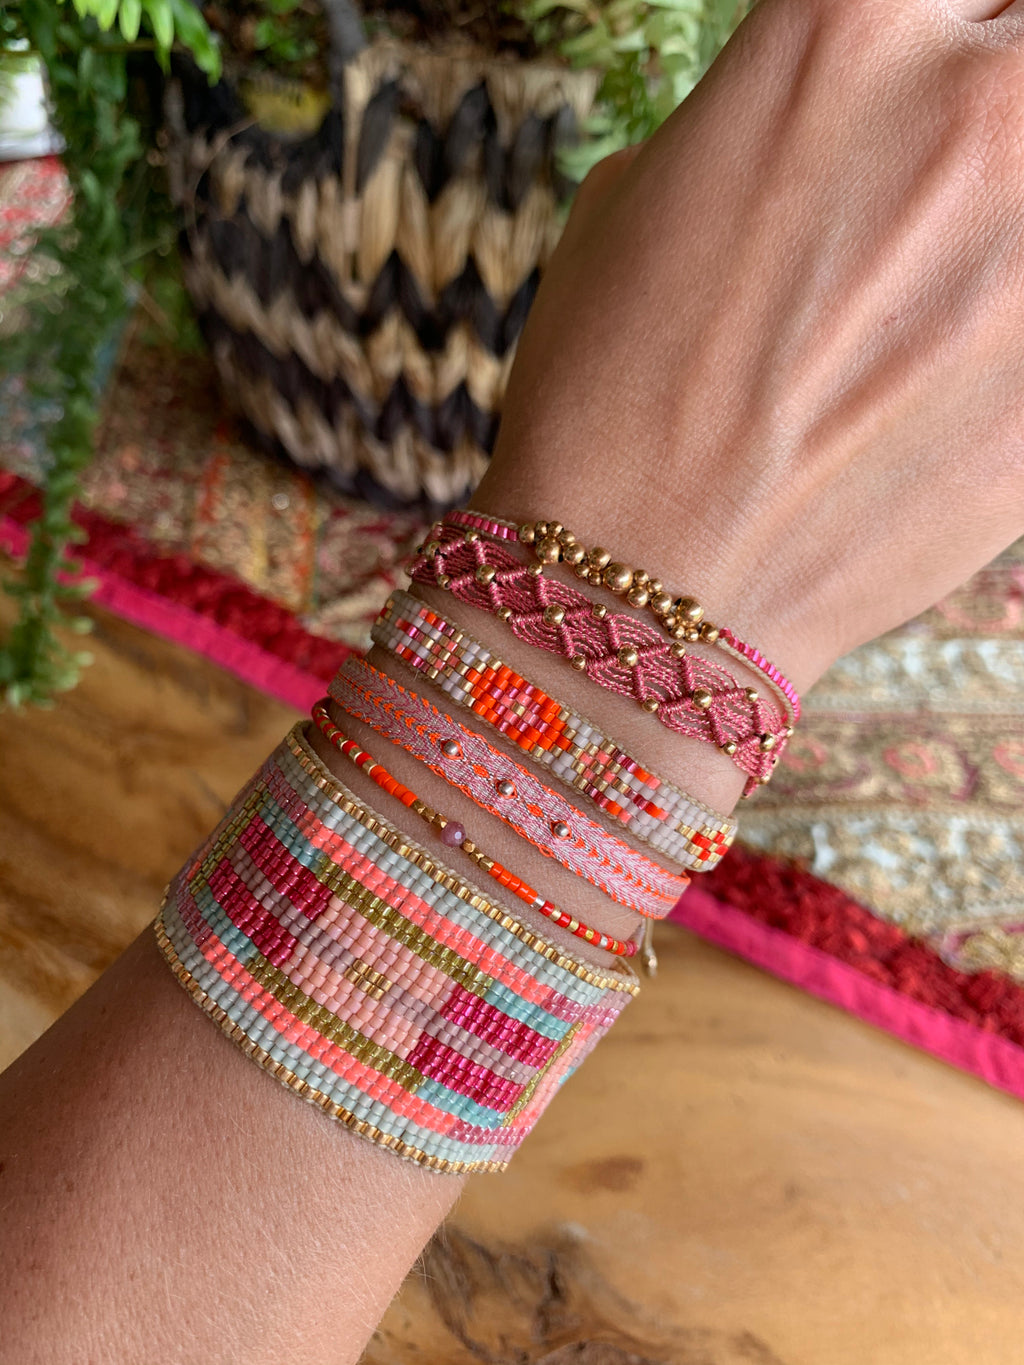 BEAD WEB HANDWOVEN BRACELET IN PINK & GOLD